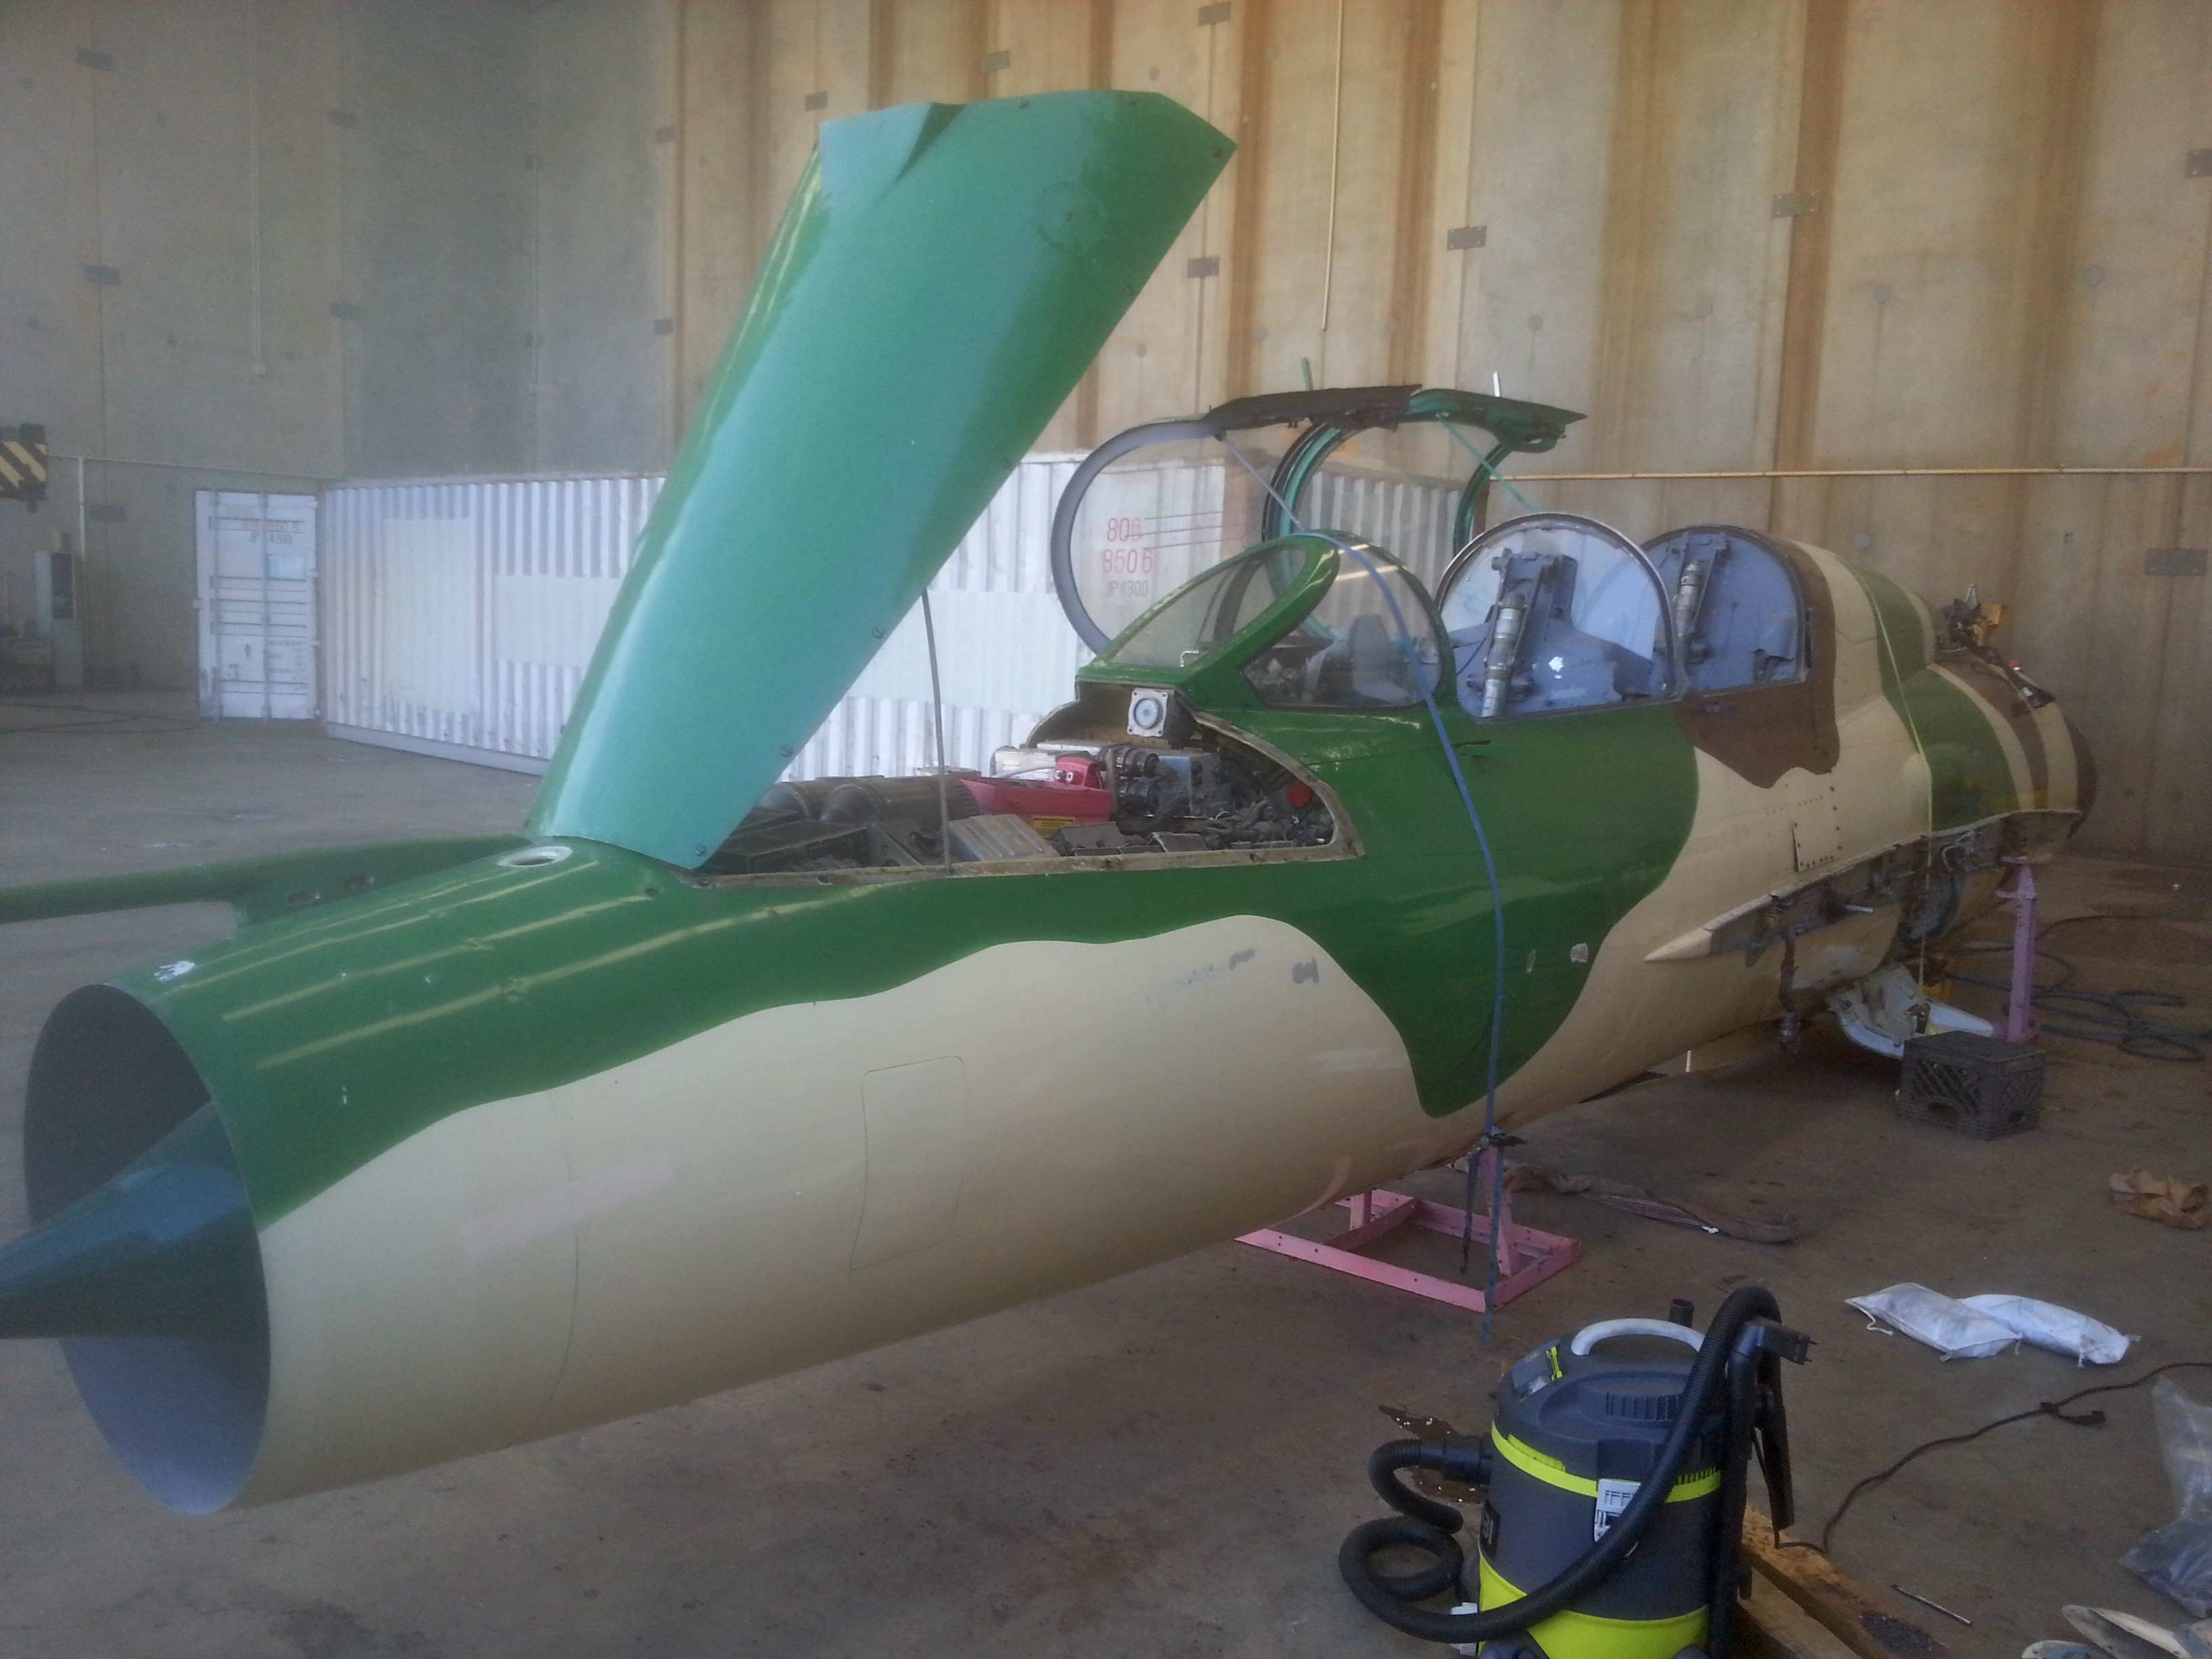 MiG-21 Flying Resto Begins in Australia